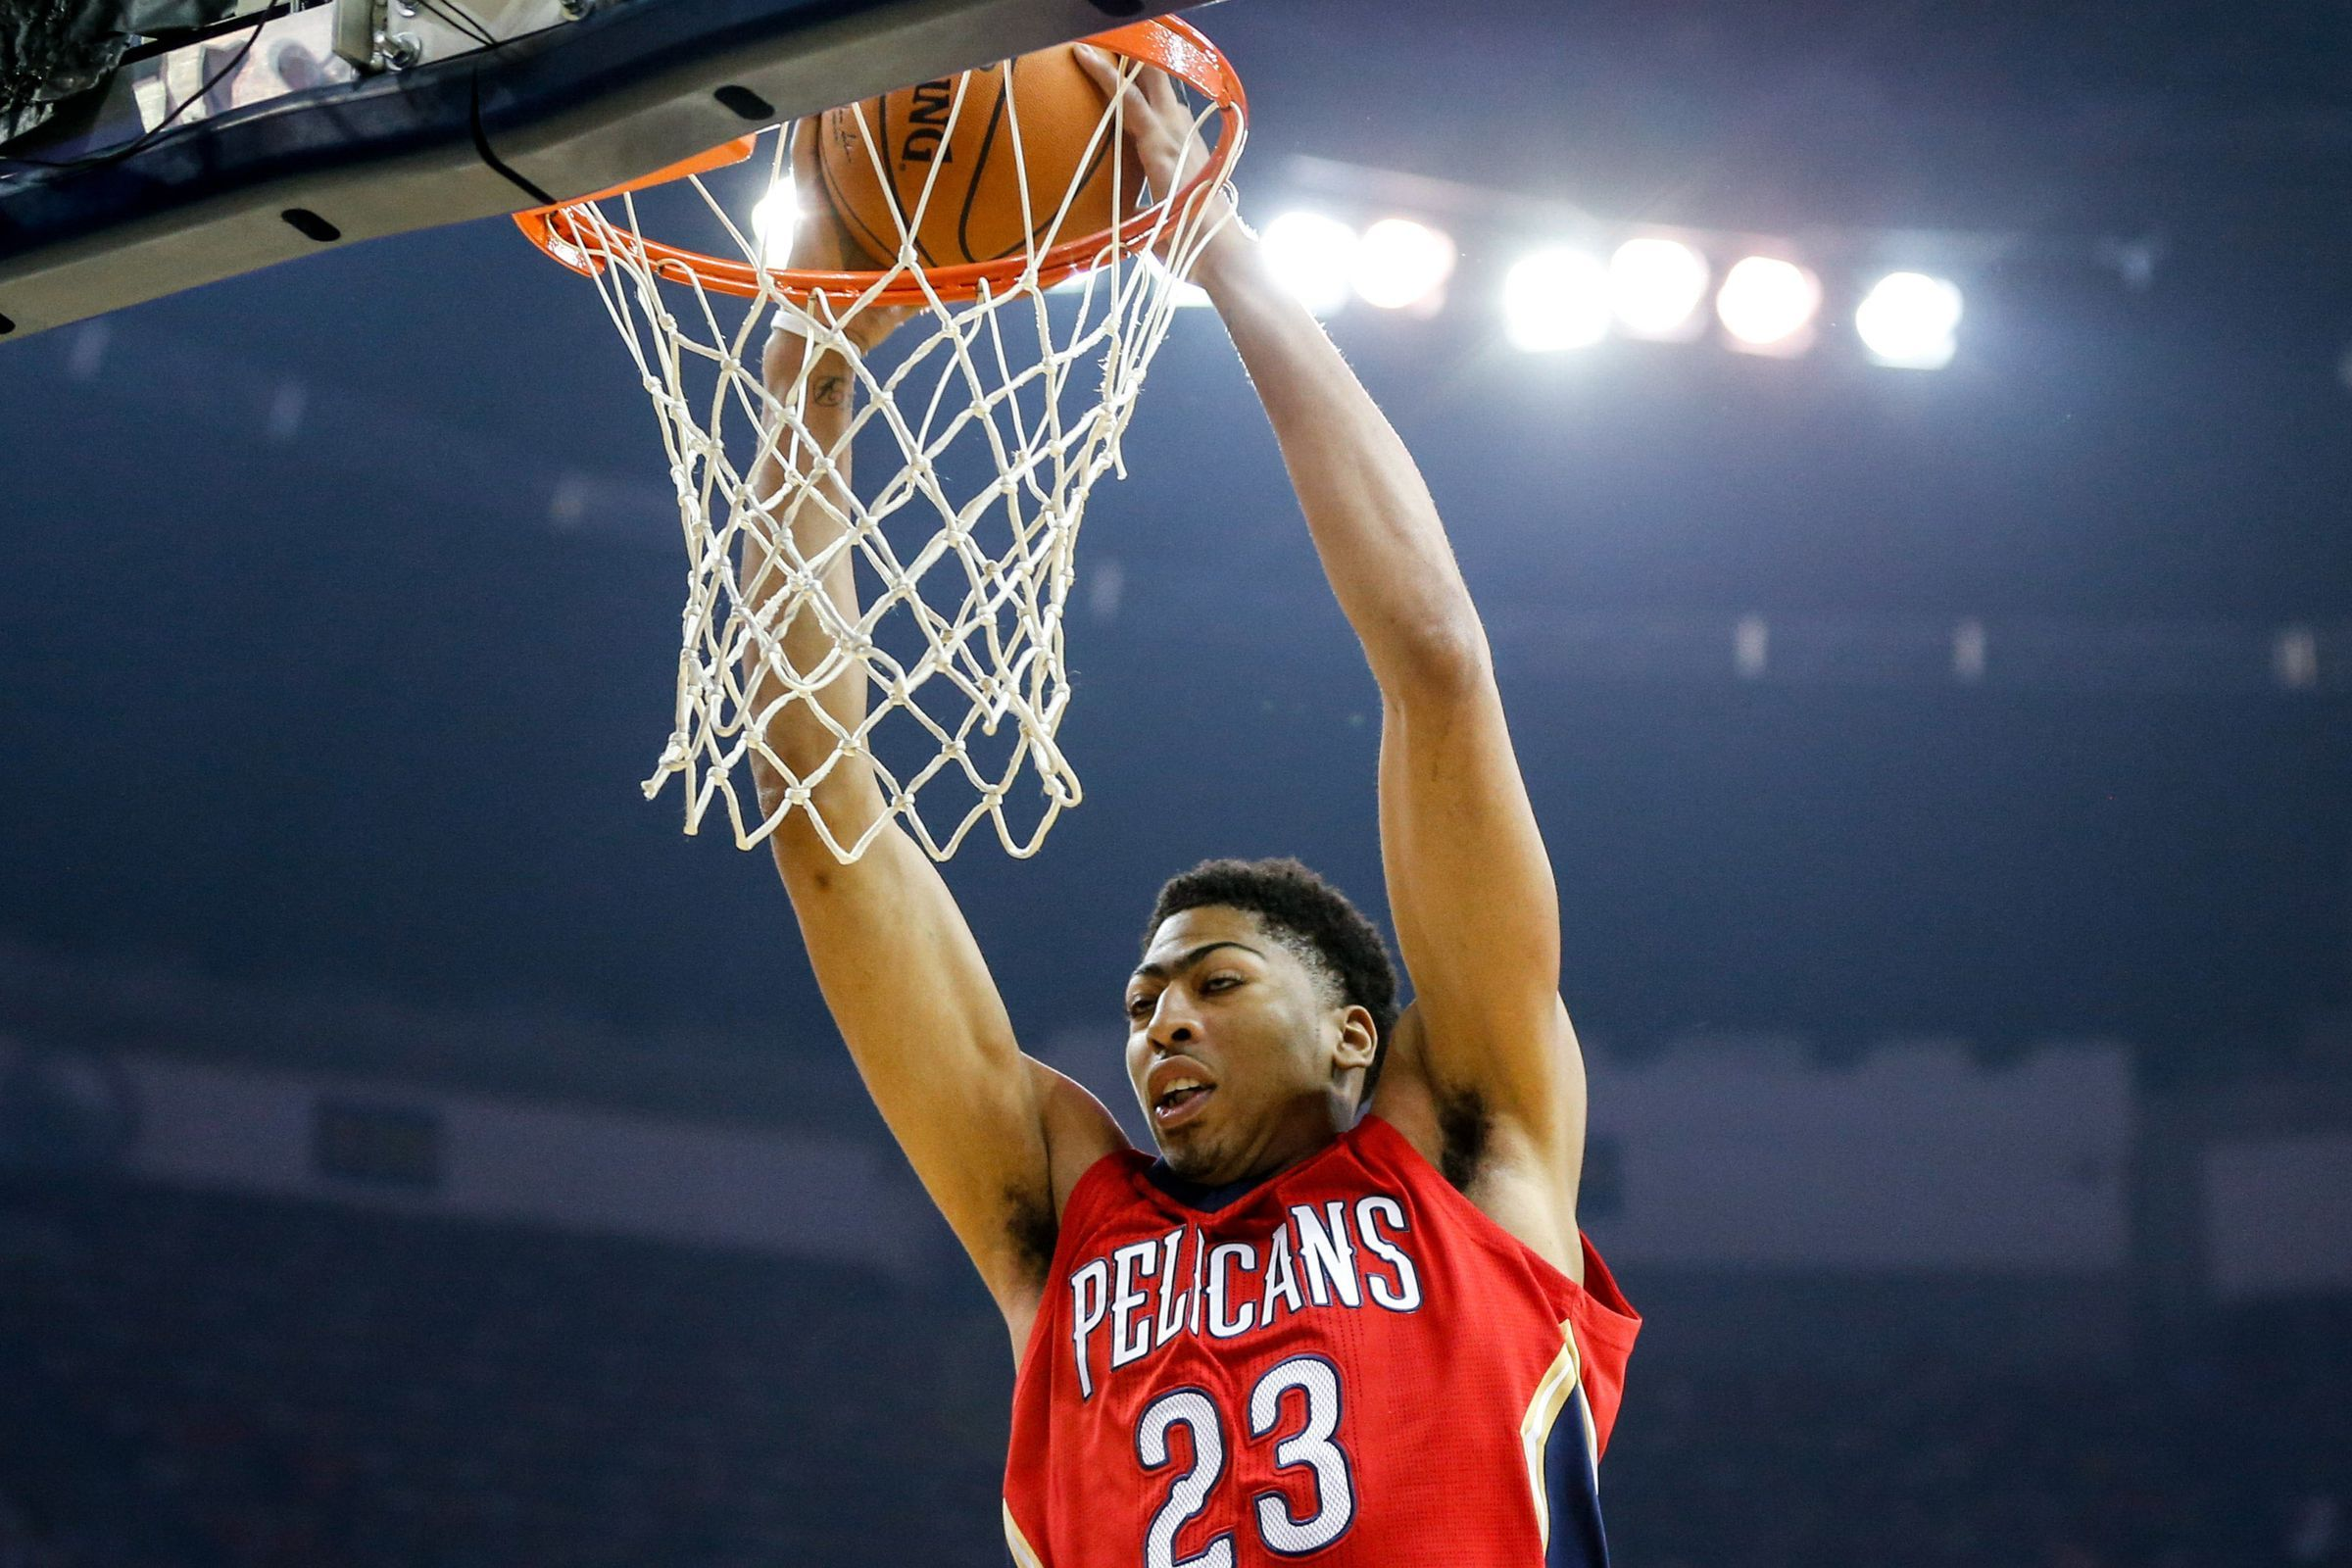 2400x1600 Anthony Davis Wallpapers High Resolution and Quality Download